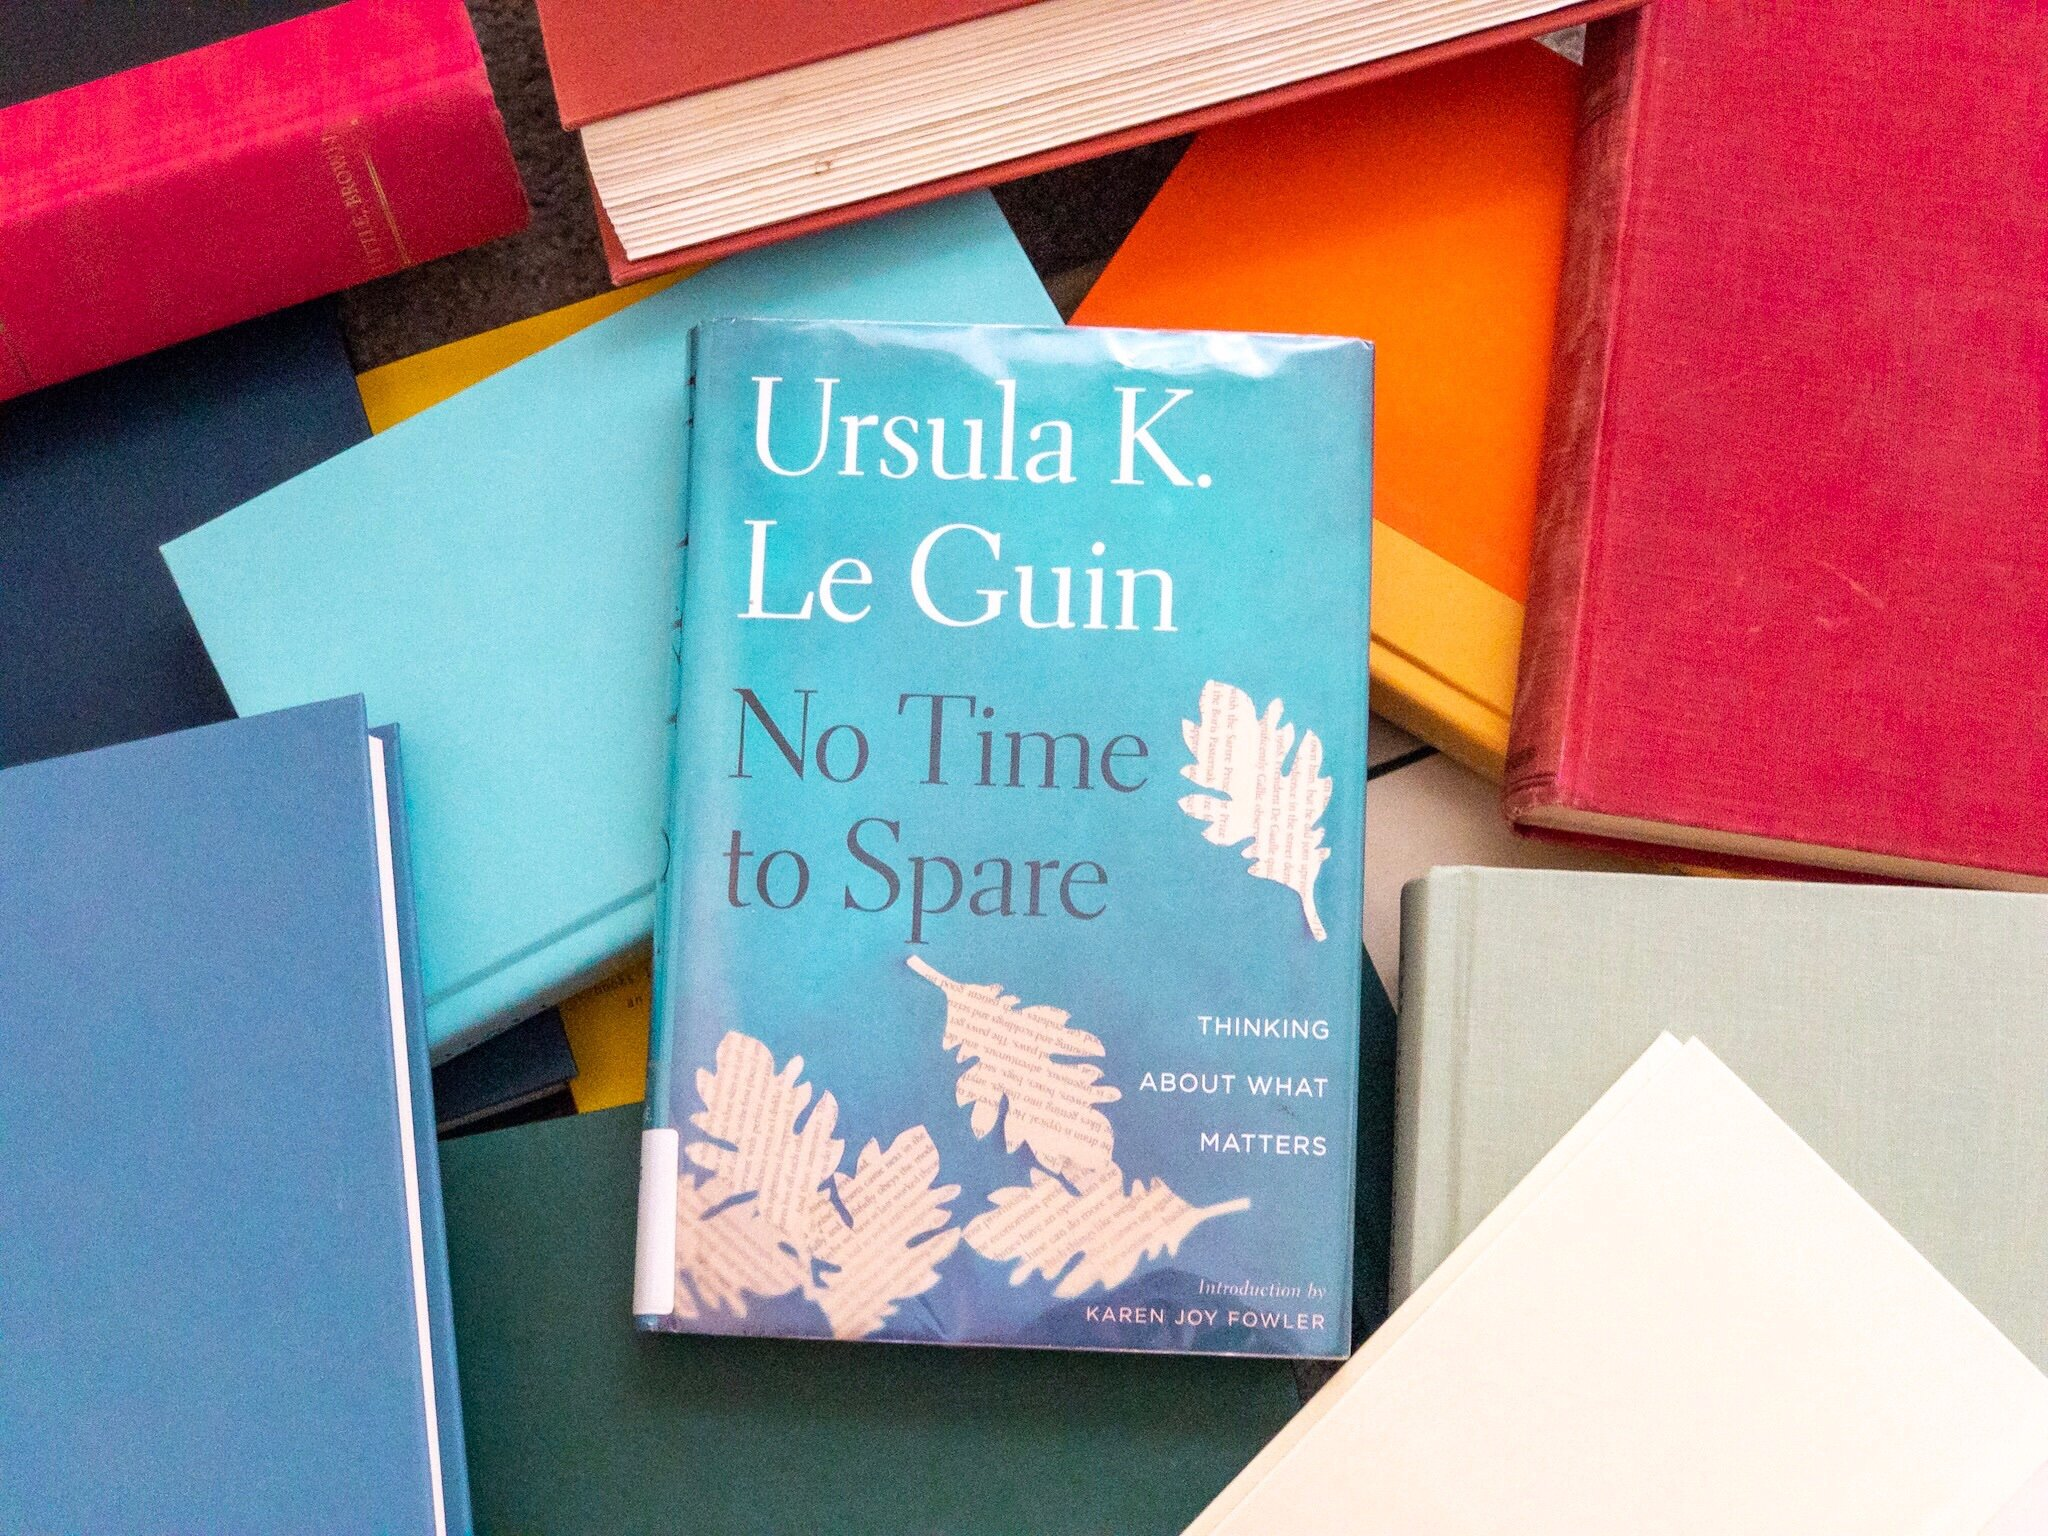 No Time to Spare, a book by Ursula K Le Guin